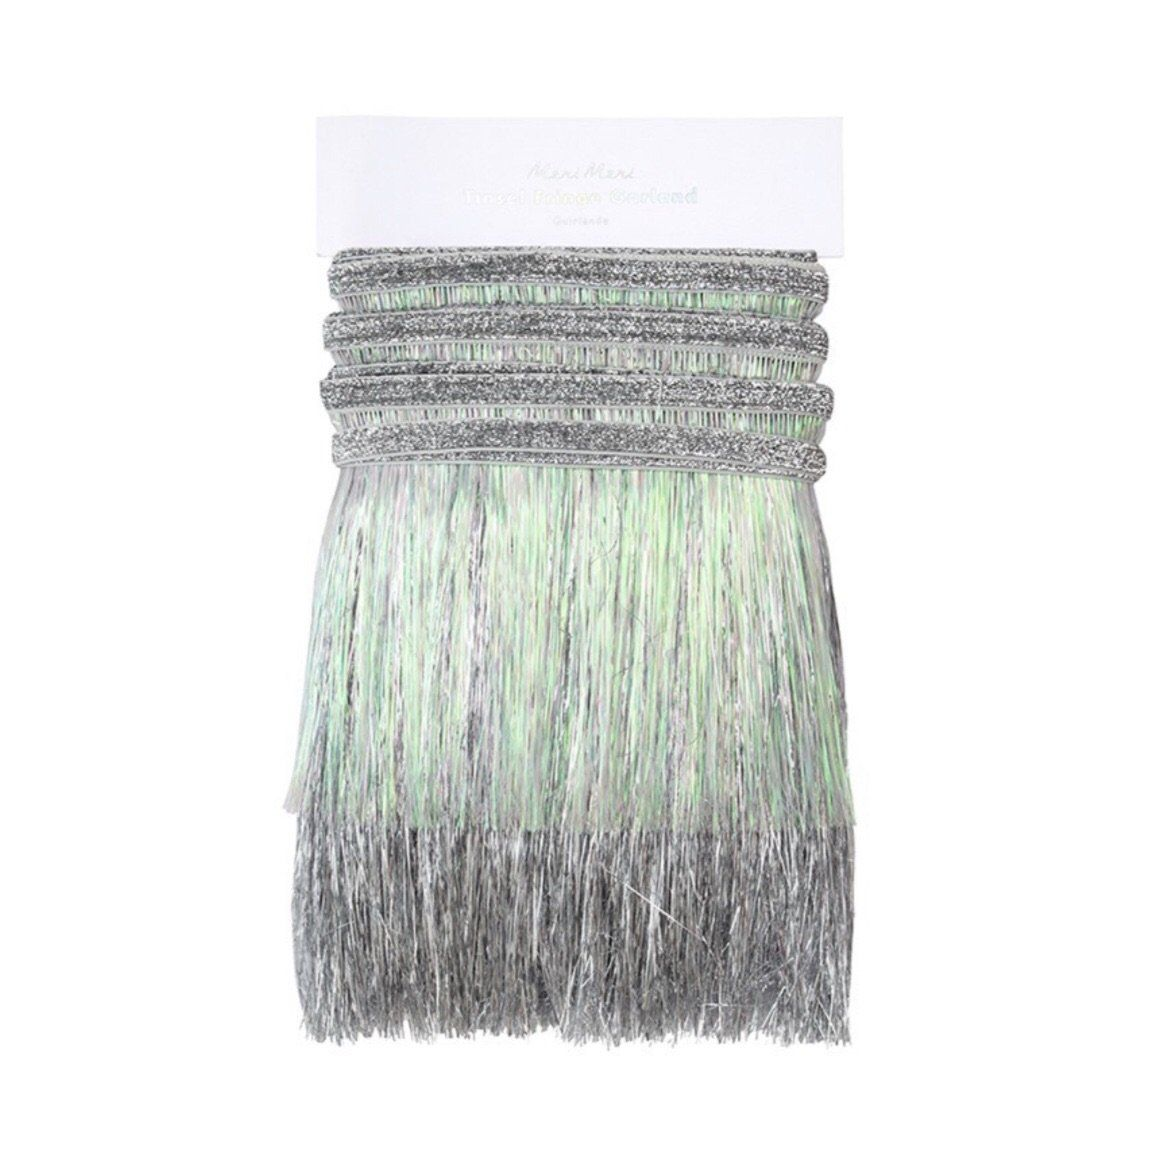 FRINGE GARLAND - SILVER IRIDESCENT **coming soon**